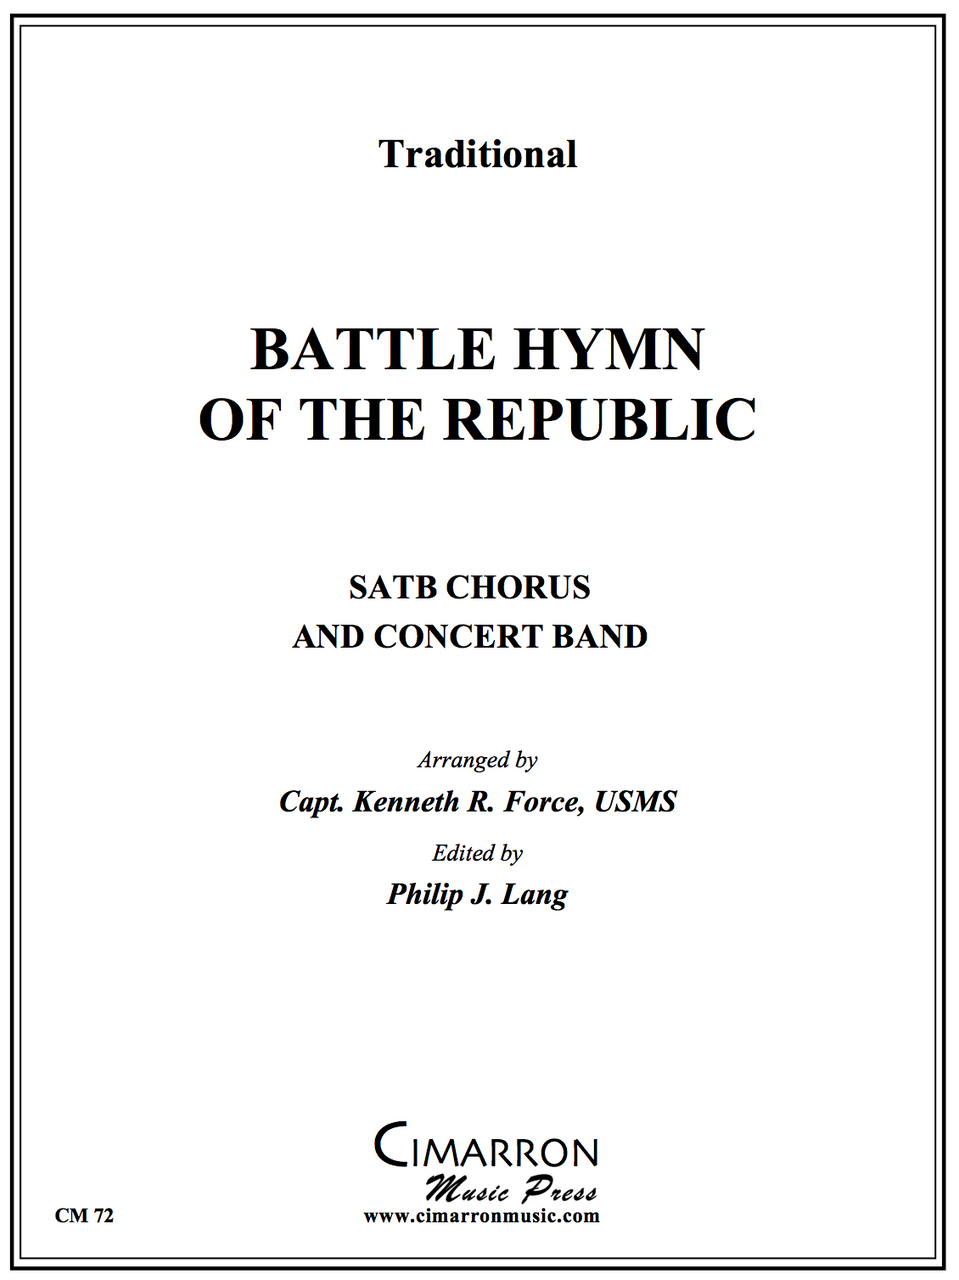 Trad - Battle Hymn of the Republic - Concert Band and SATB Chorus